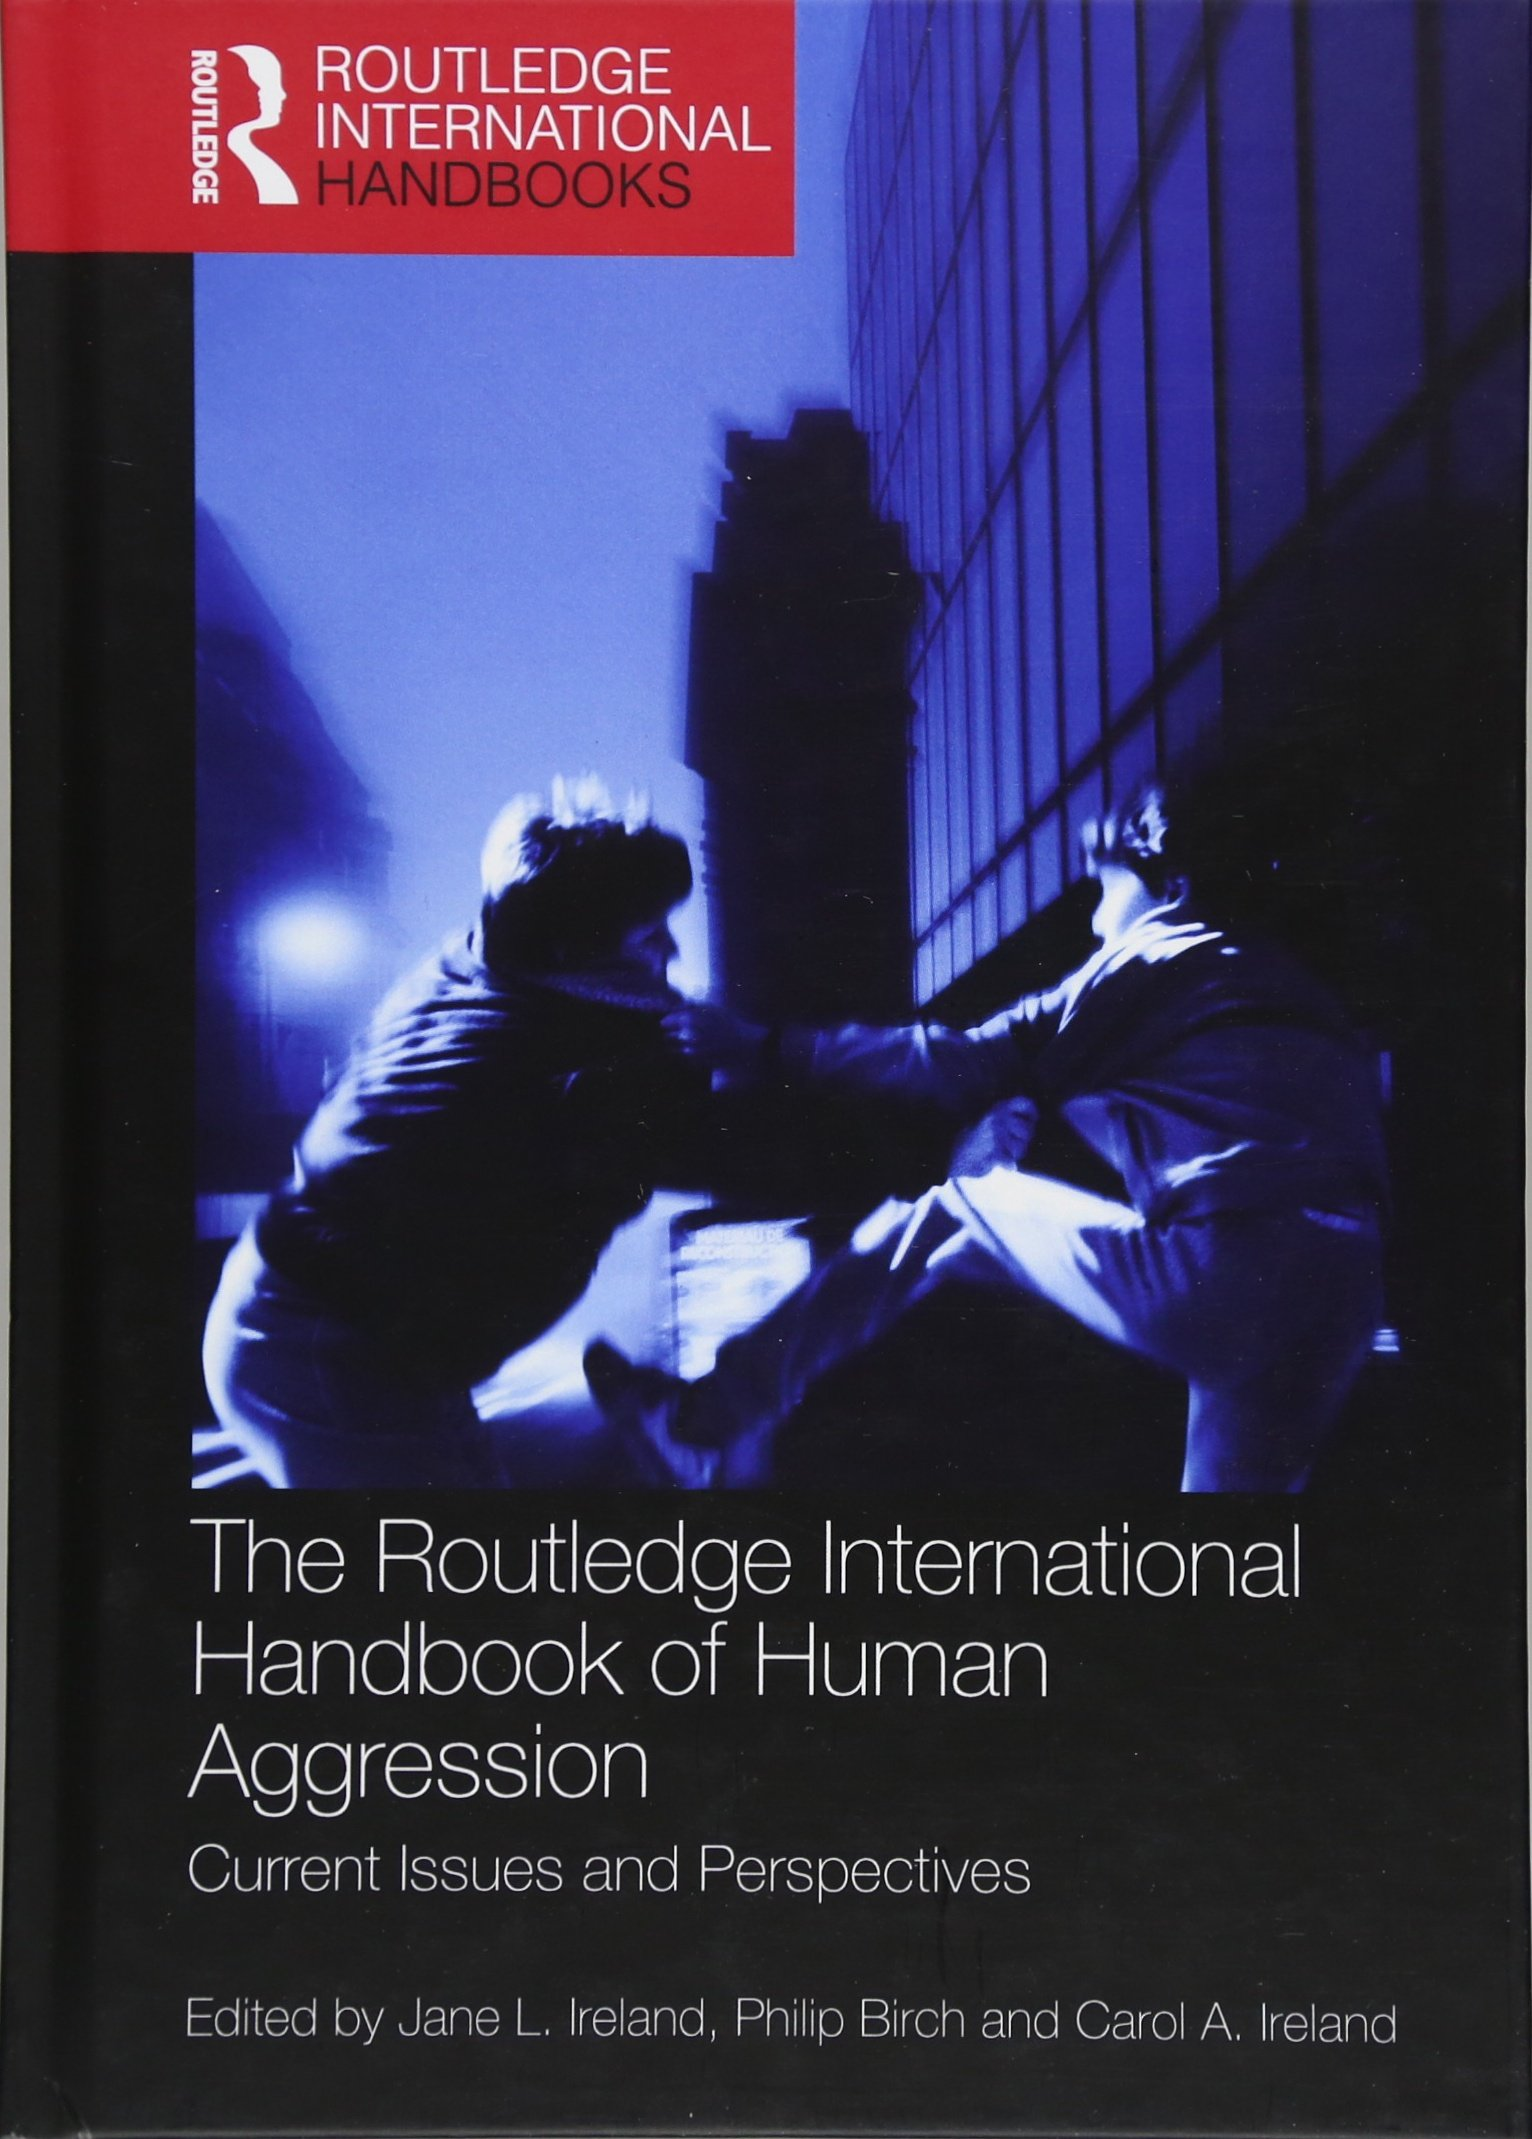 The Routledge International Handbook of Human Aggression: Current Issues and Perspectives (Routledge International Handbooks)